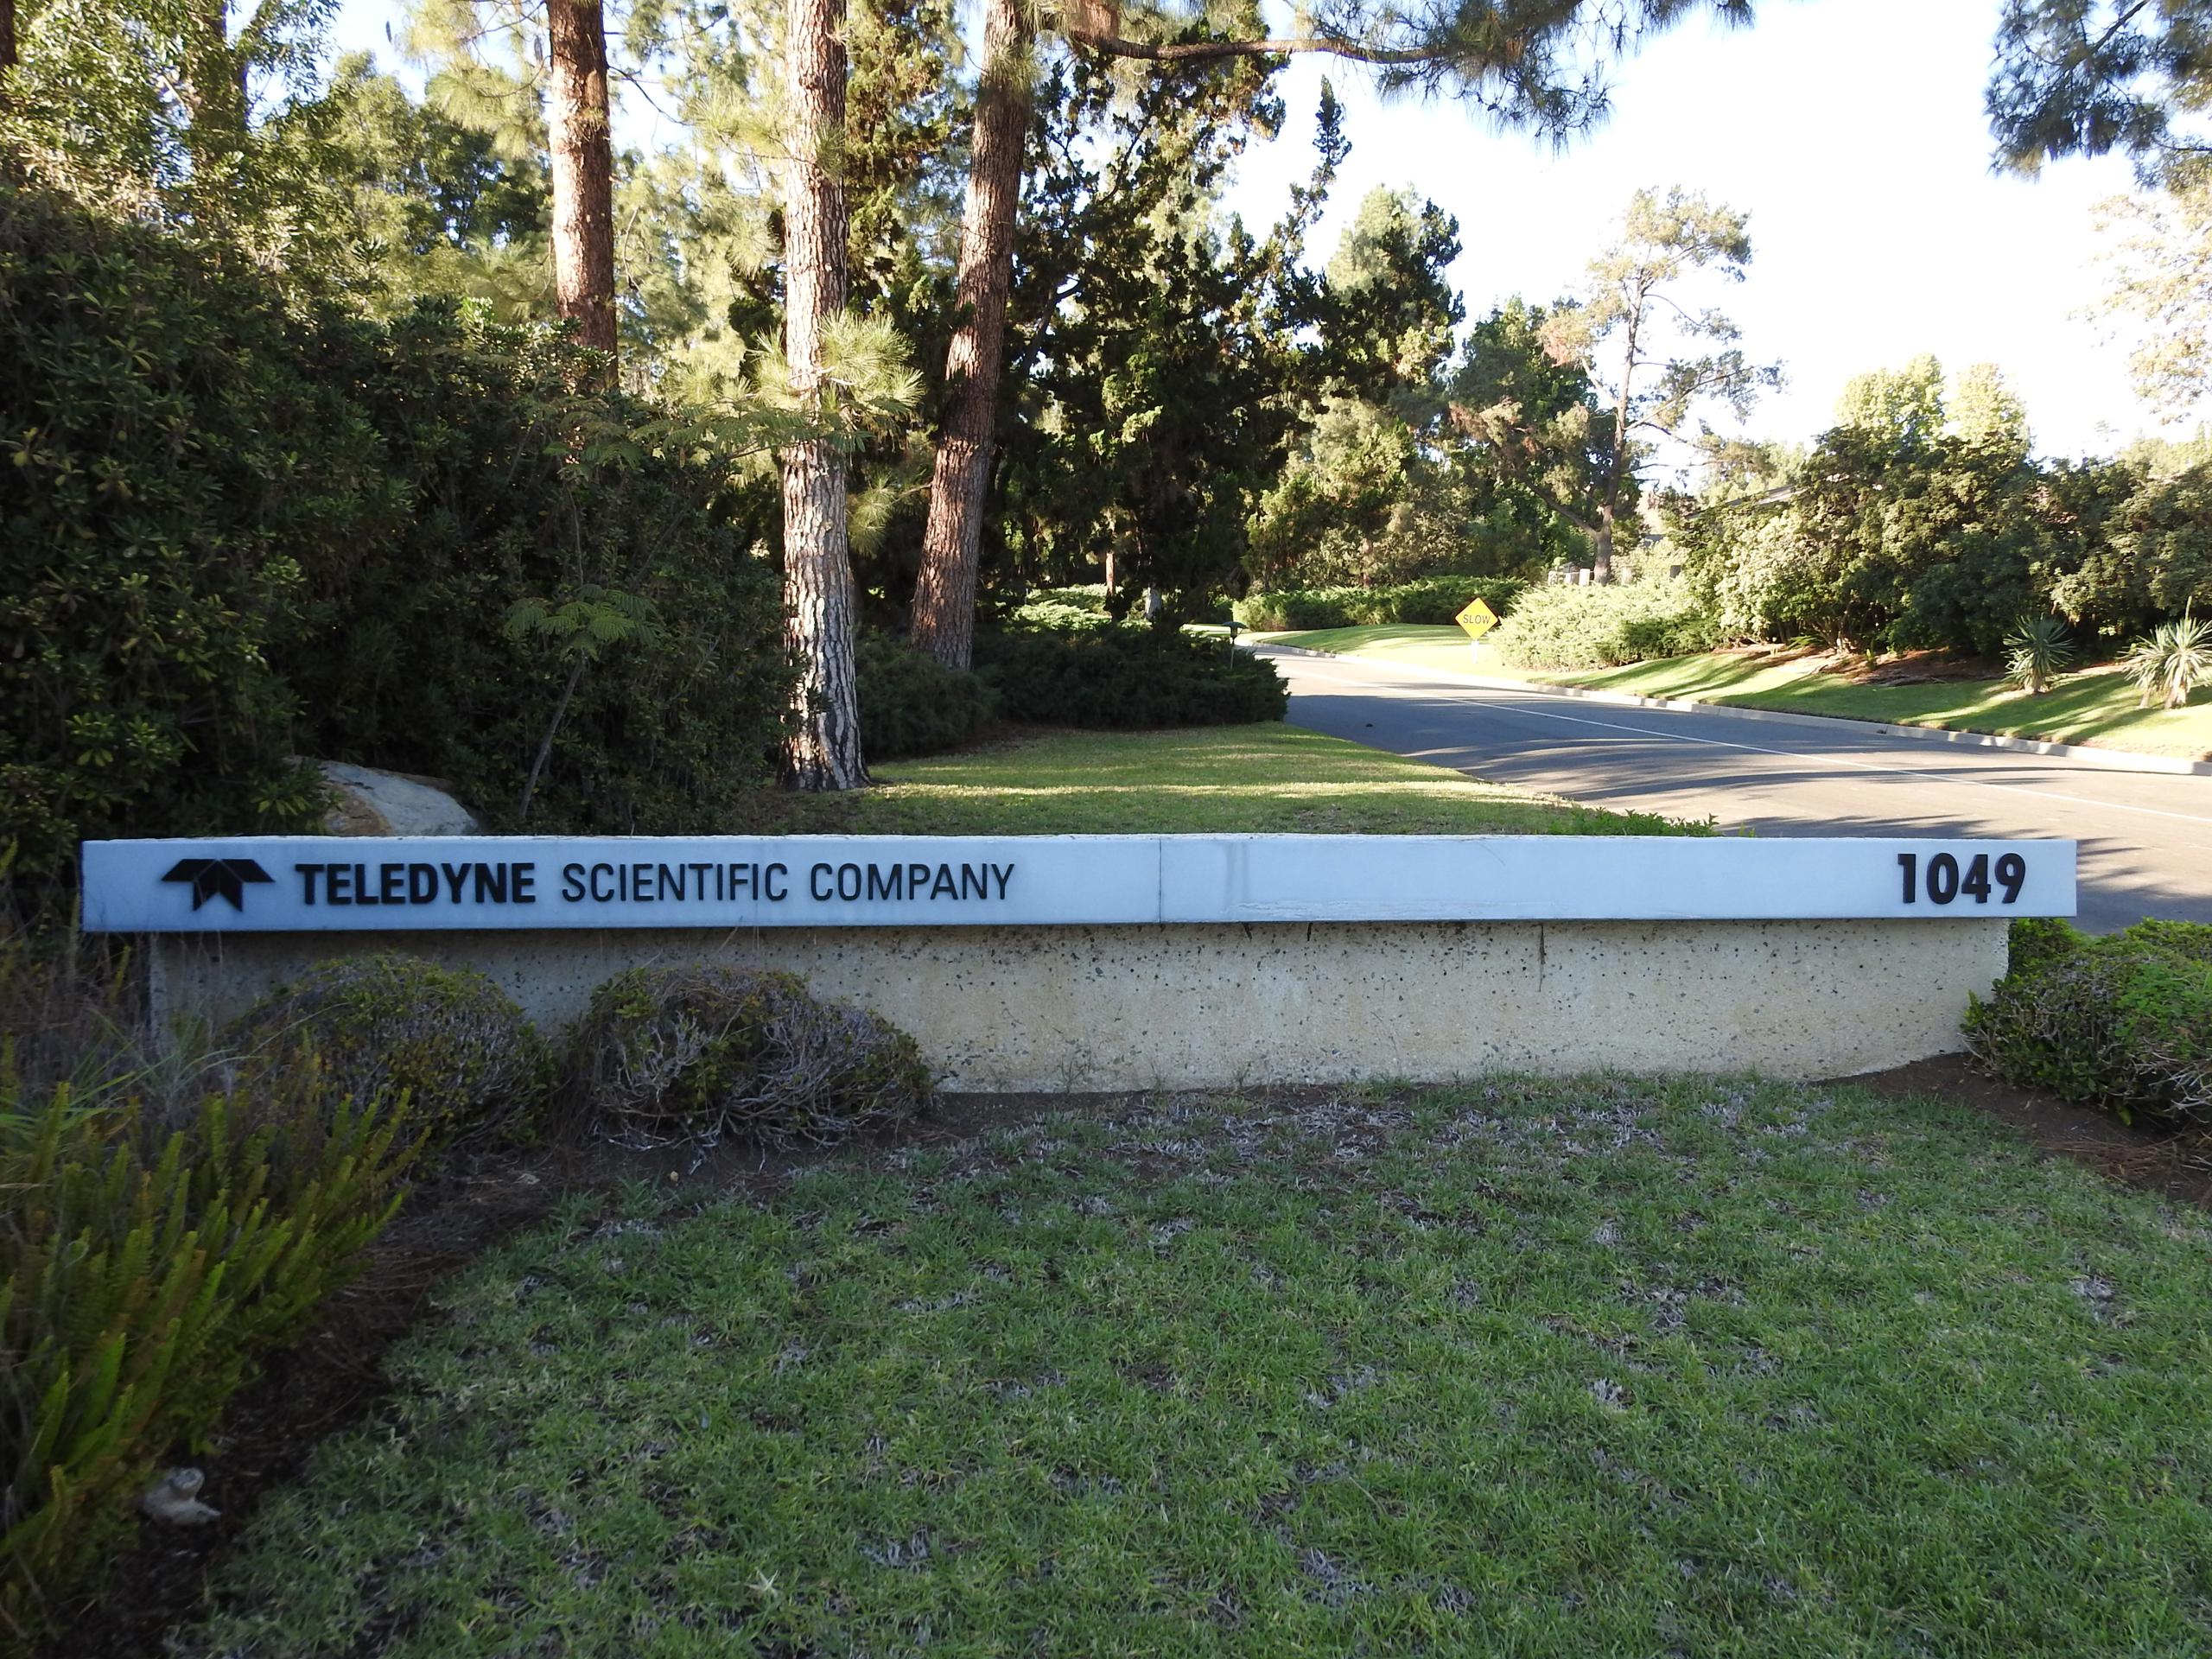 Entrance to Teledyne's corporate campus in Thousand Oaks, California.